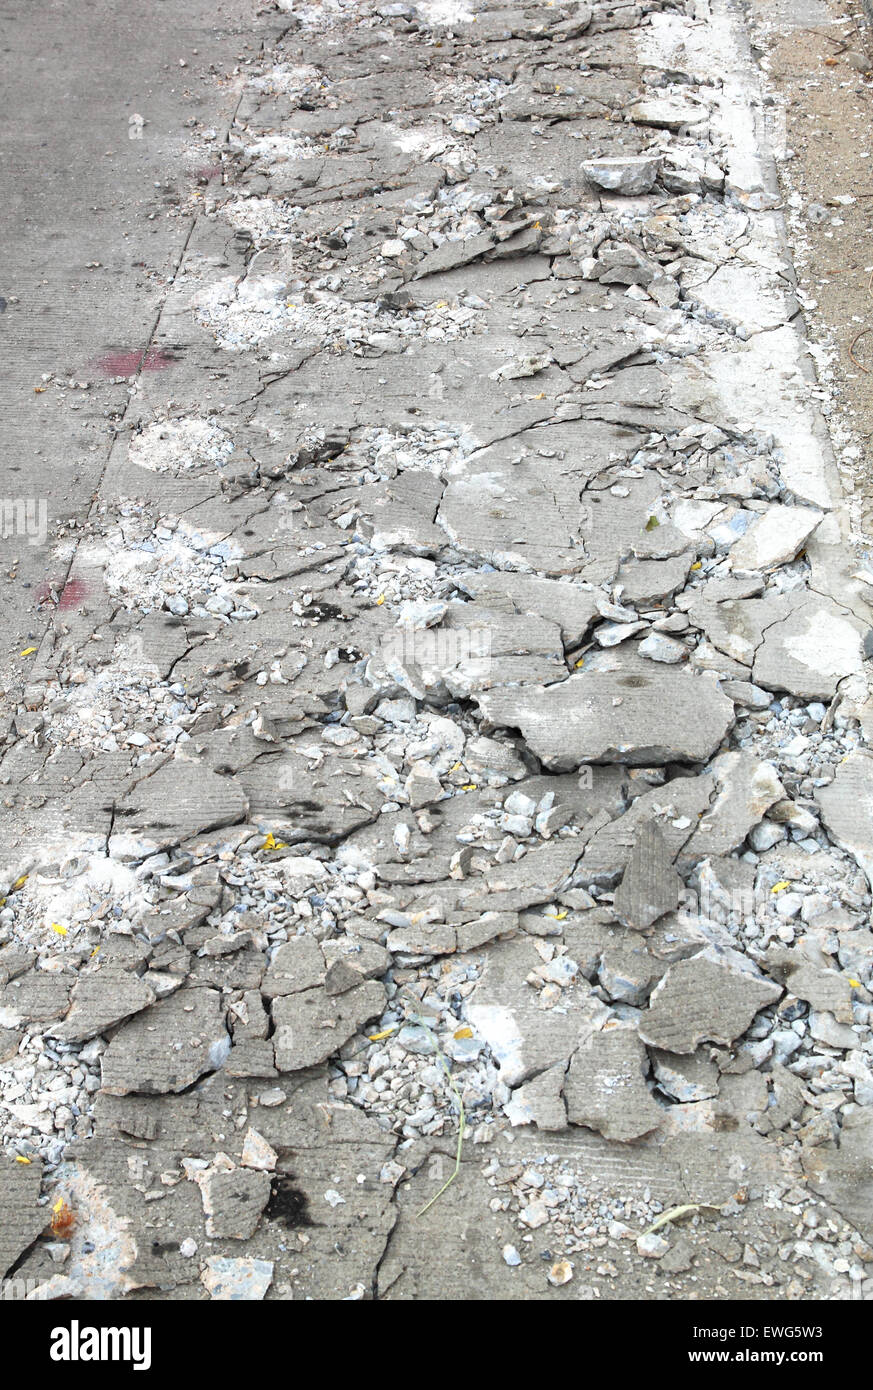 Cement fracture surface destruction construction of the road. - Stock Image